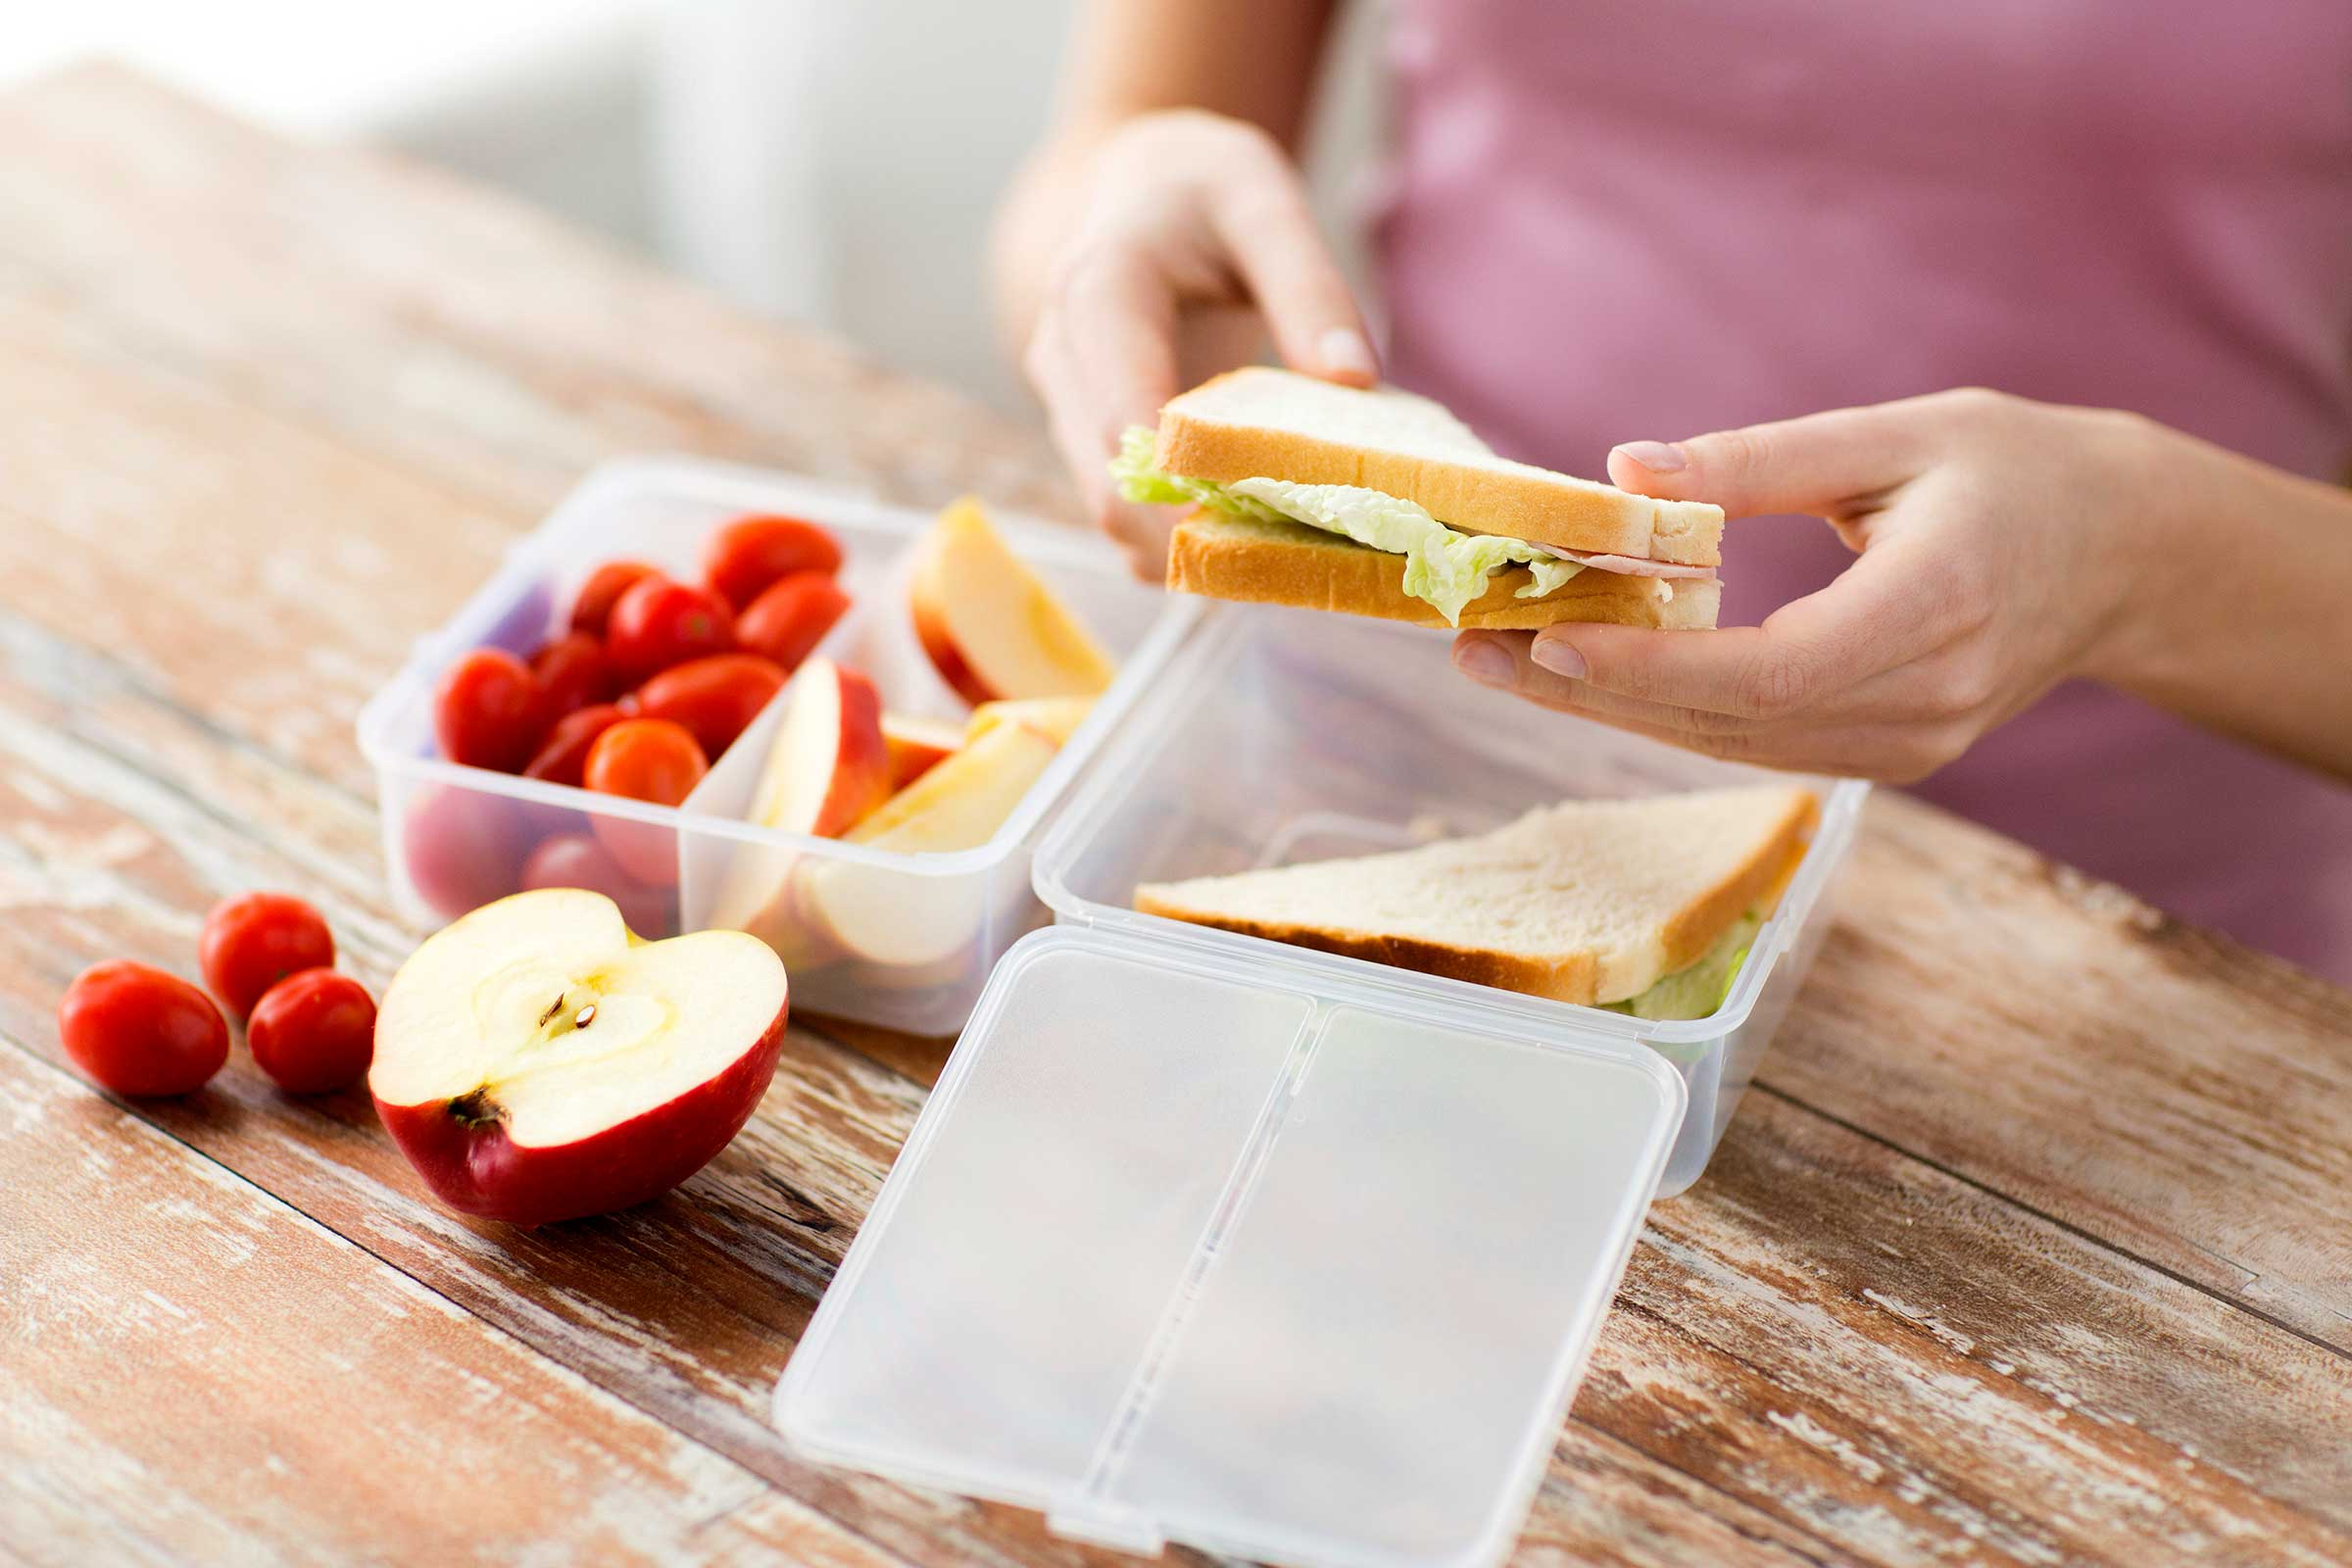 Enjoy healthy meals by Habit that go with your DNA